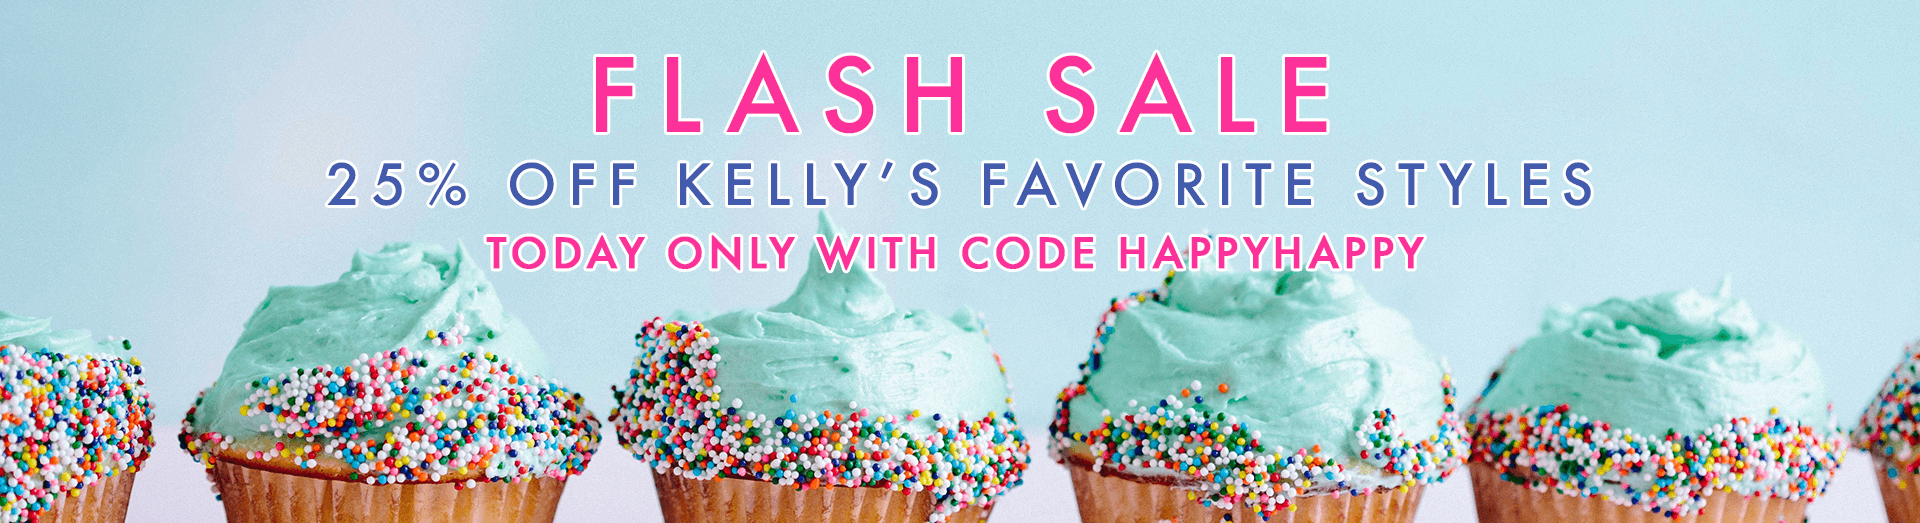 Moon and Lola - Happy Birthday Kelly Flash Sale